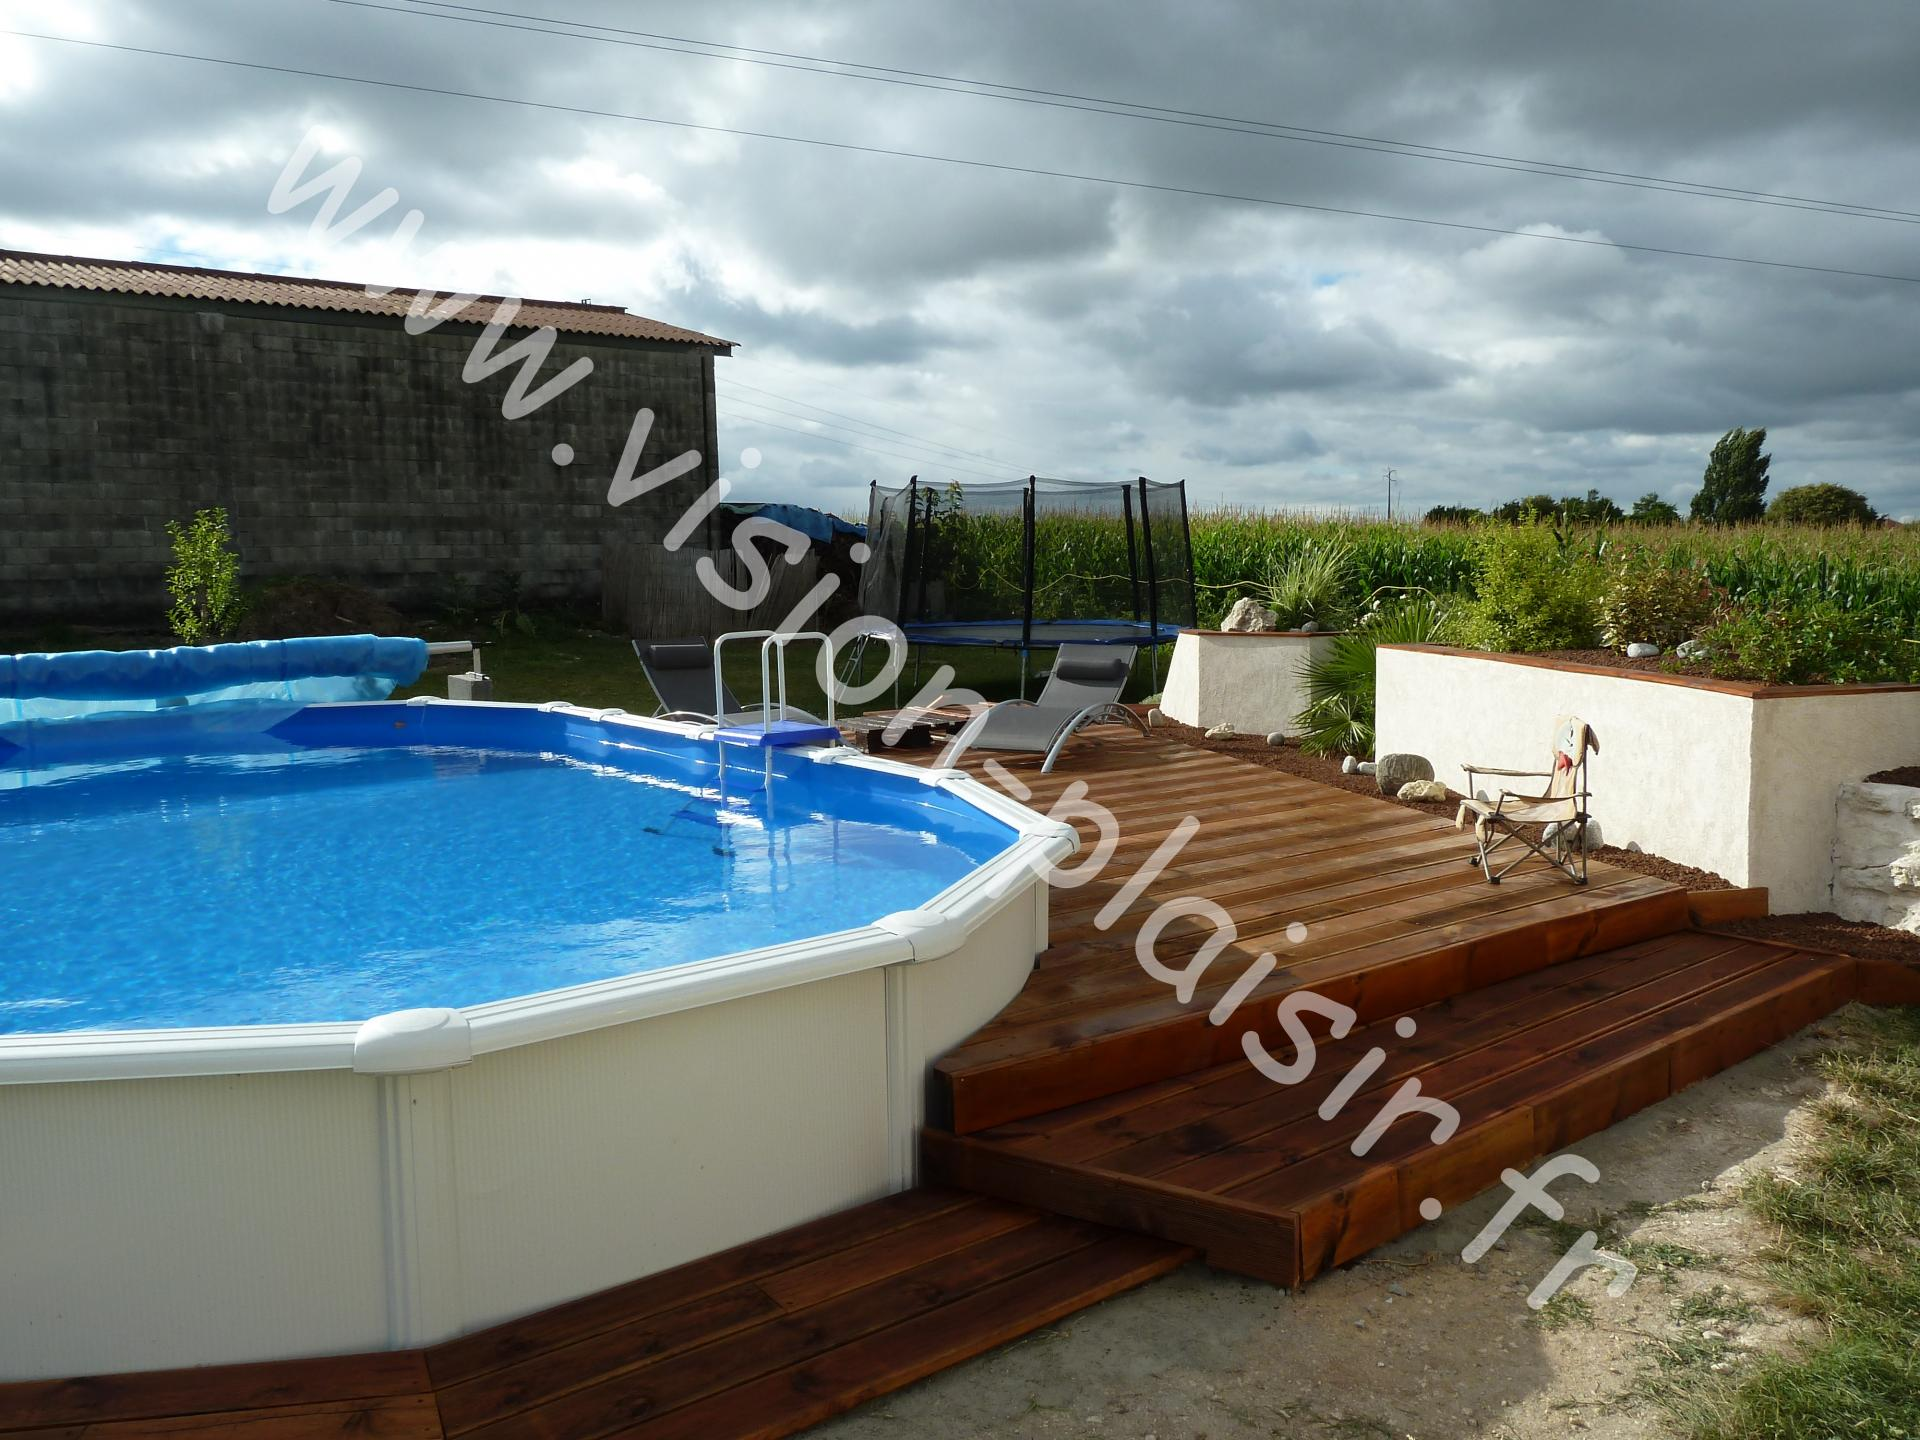 Cout piscine enterre prix liner polyester de 15 000 plus for Prix piscine demontable